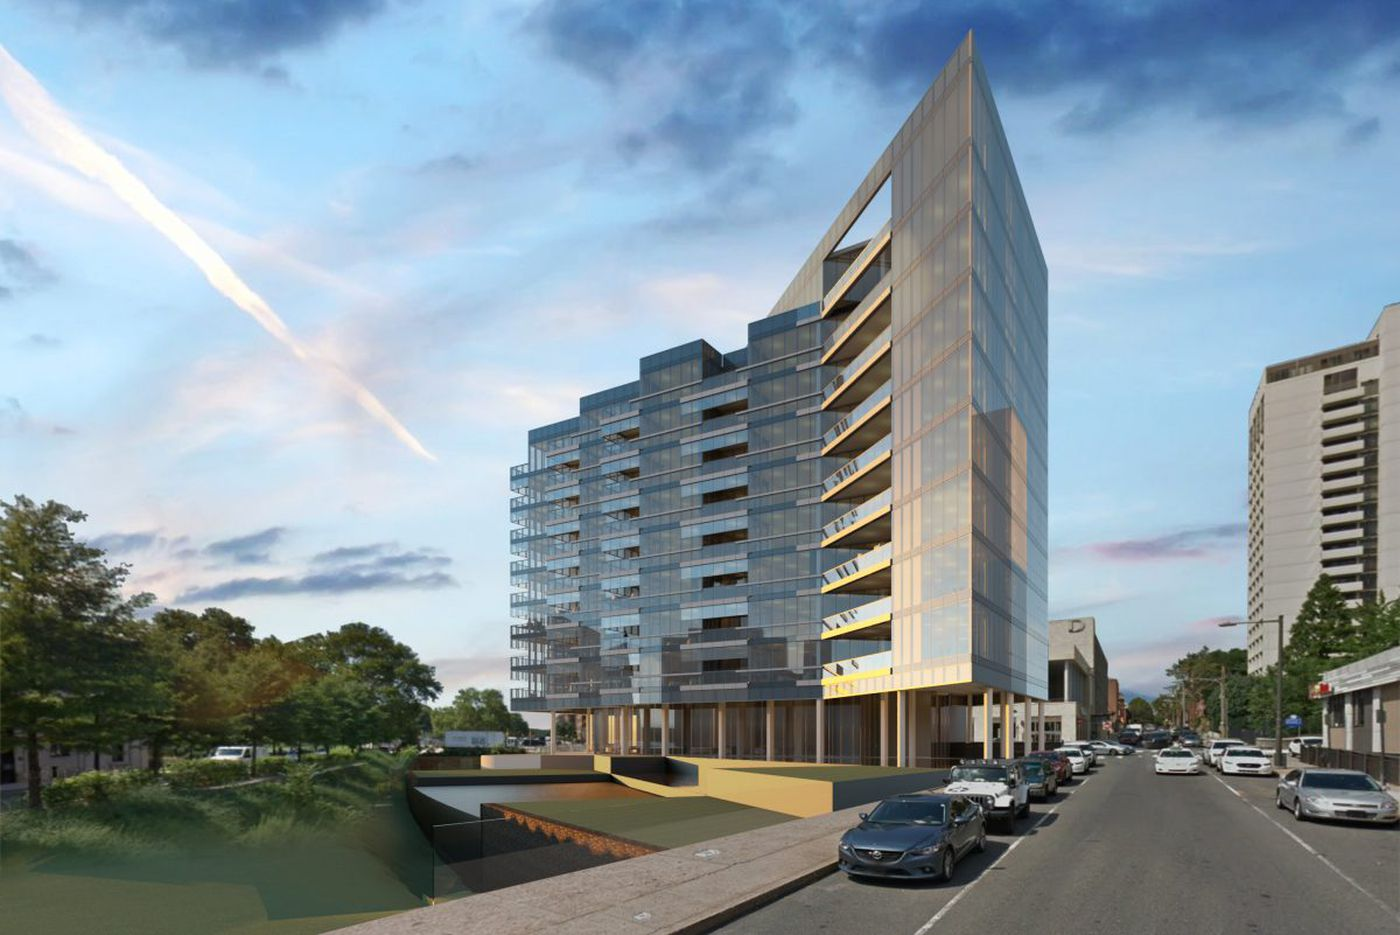 New neighbor planned for Rodin Museum on Parkway: A 10-story condo building